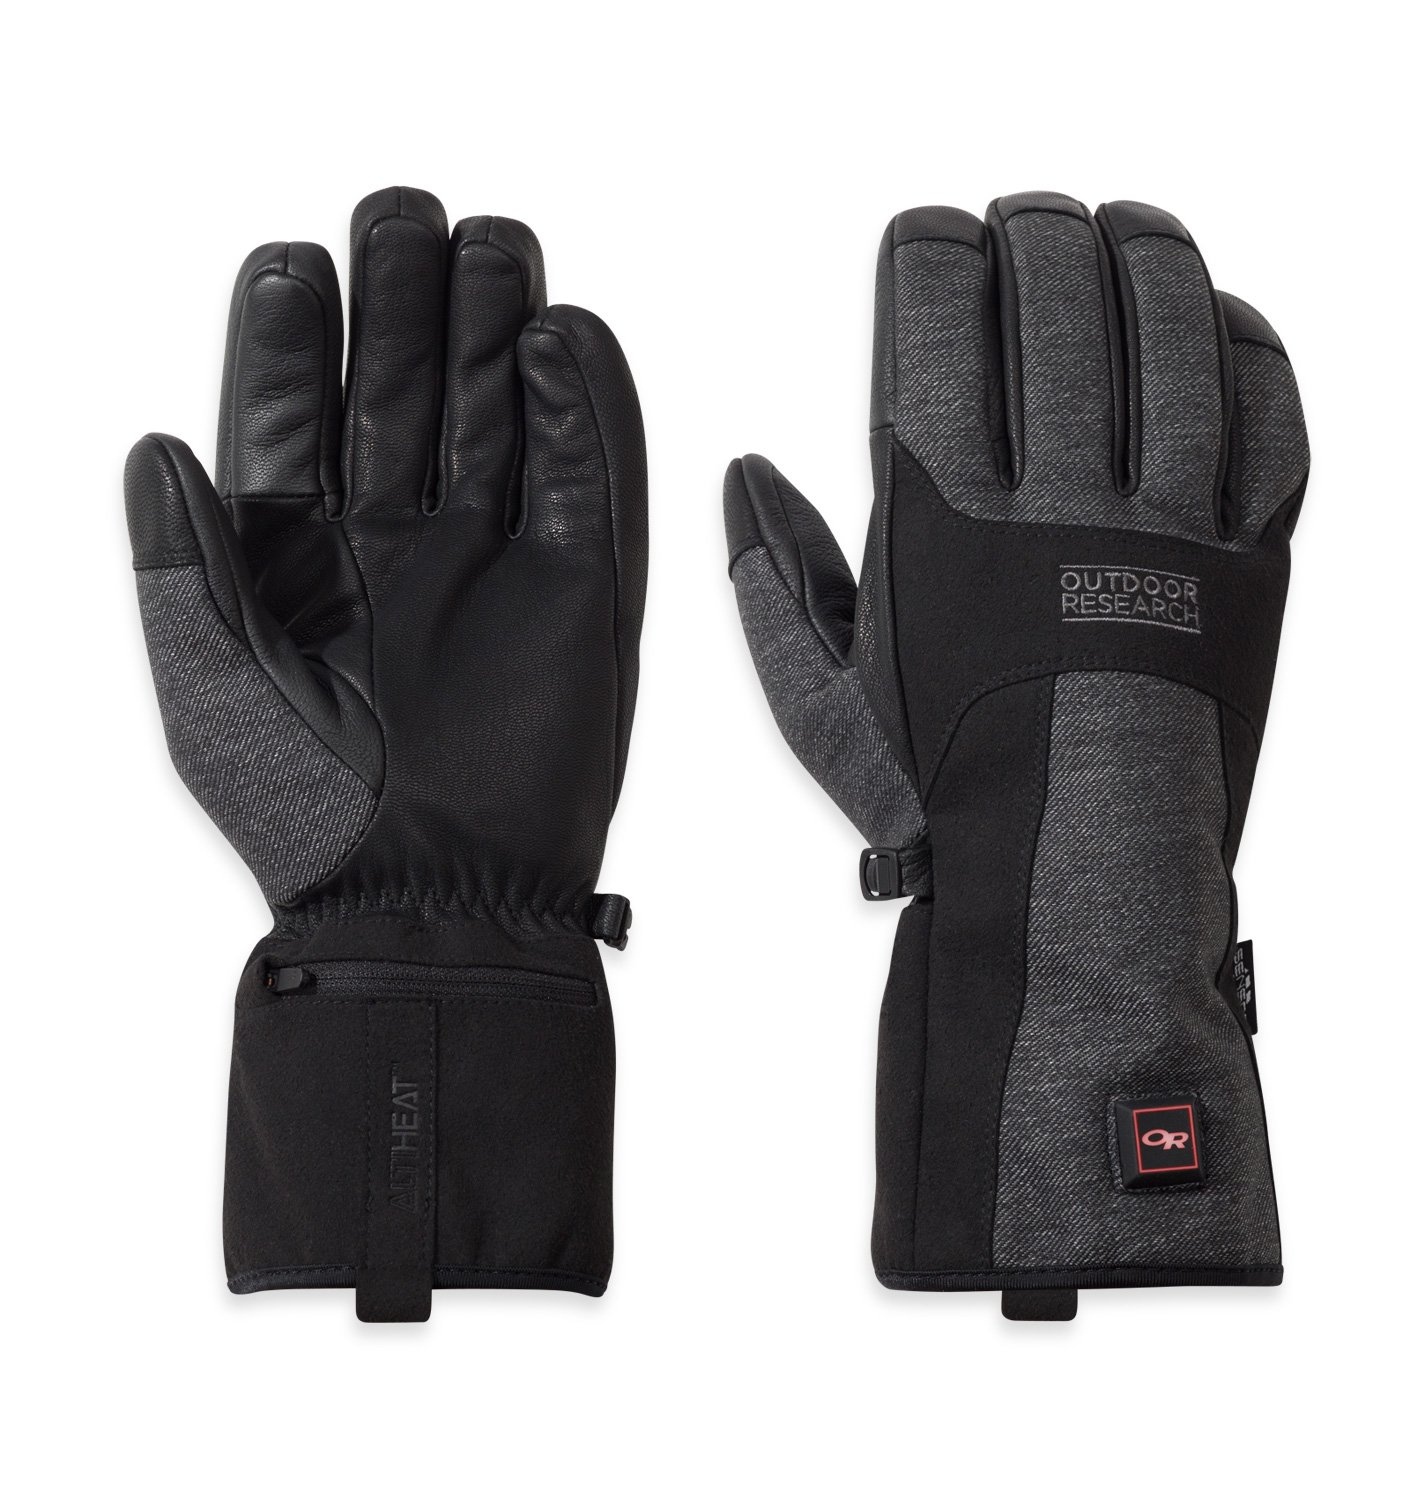 Outdoor Research Oberland Heated Gloves, Black/Charcoal, M